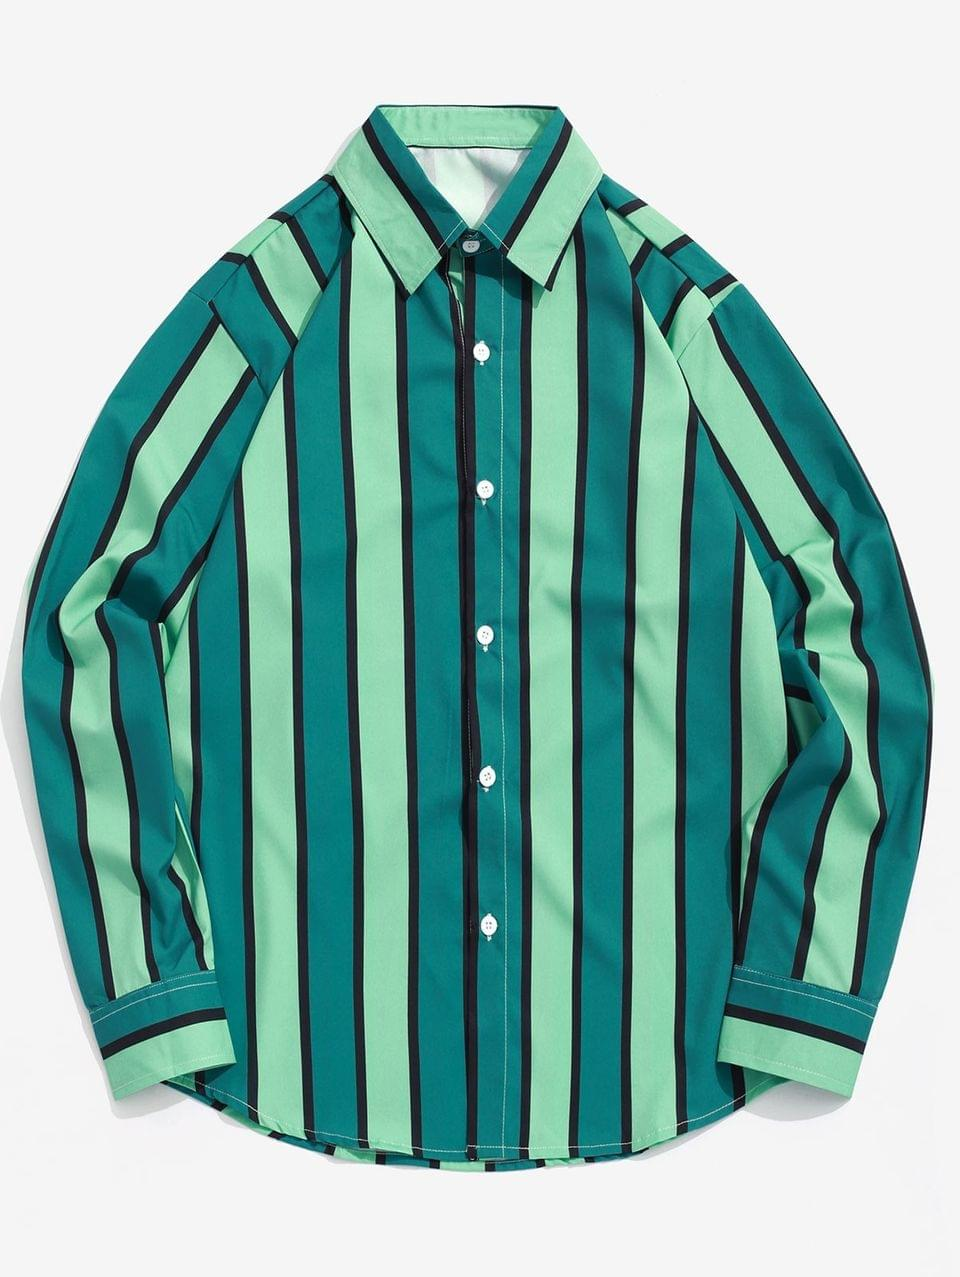 Men's Colorblock Vertical Striped Print Casual Button Shirt - Multi S